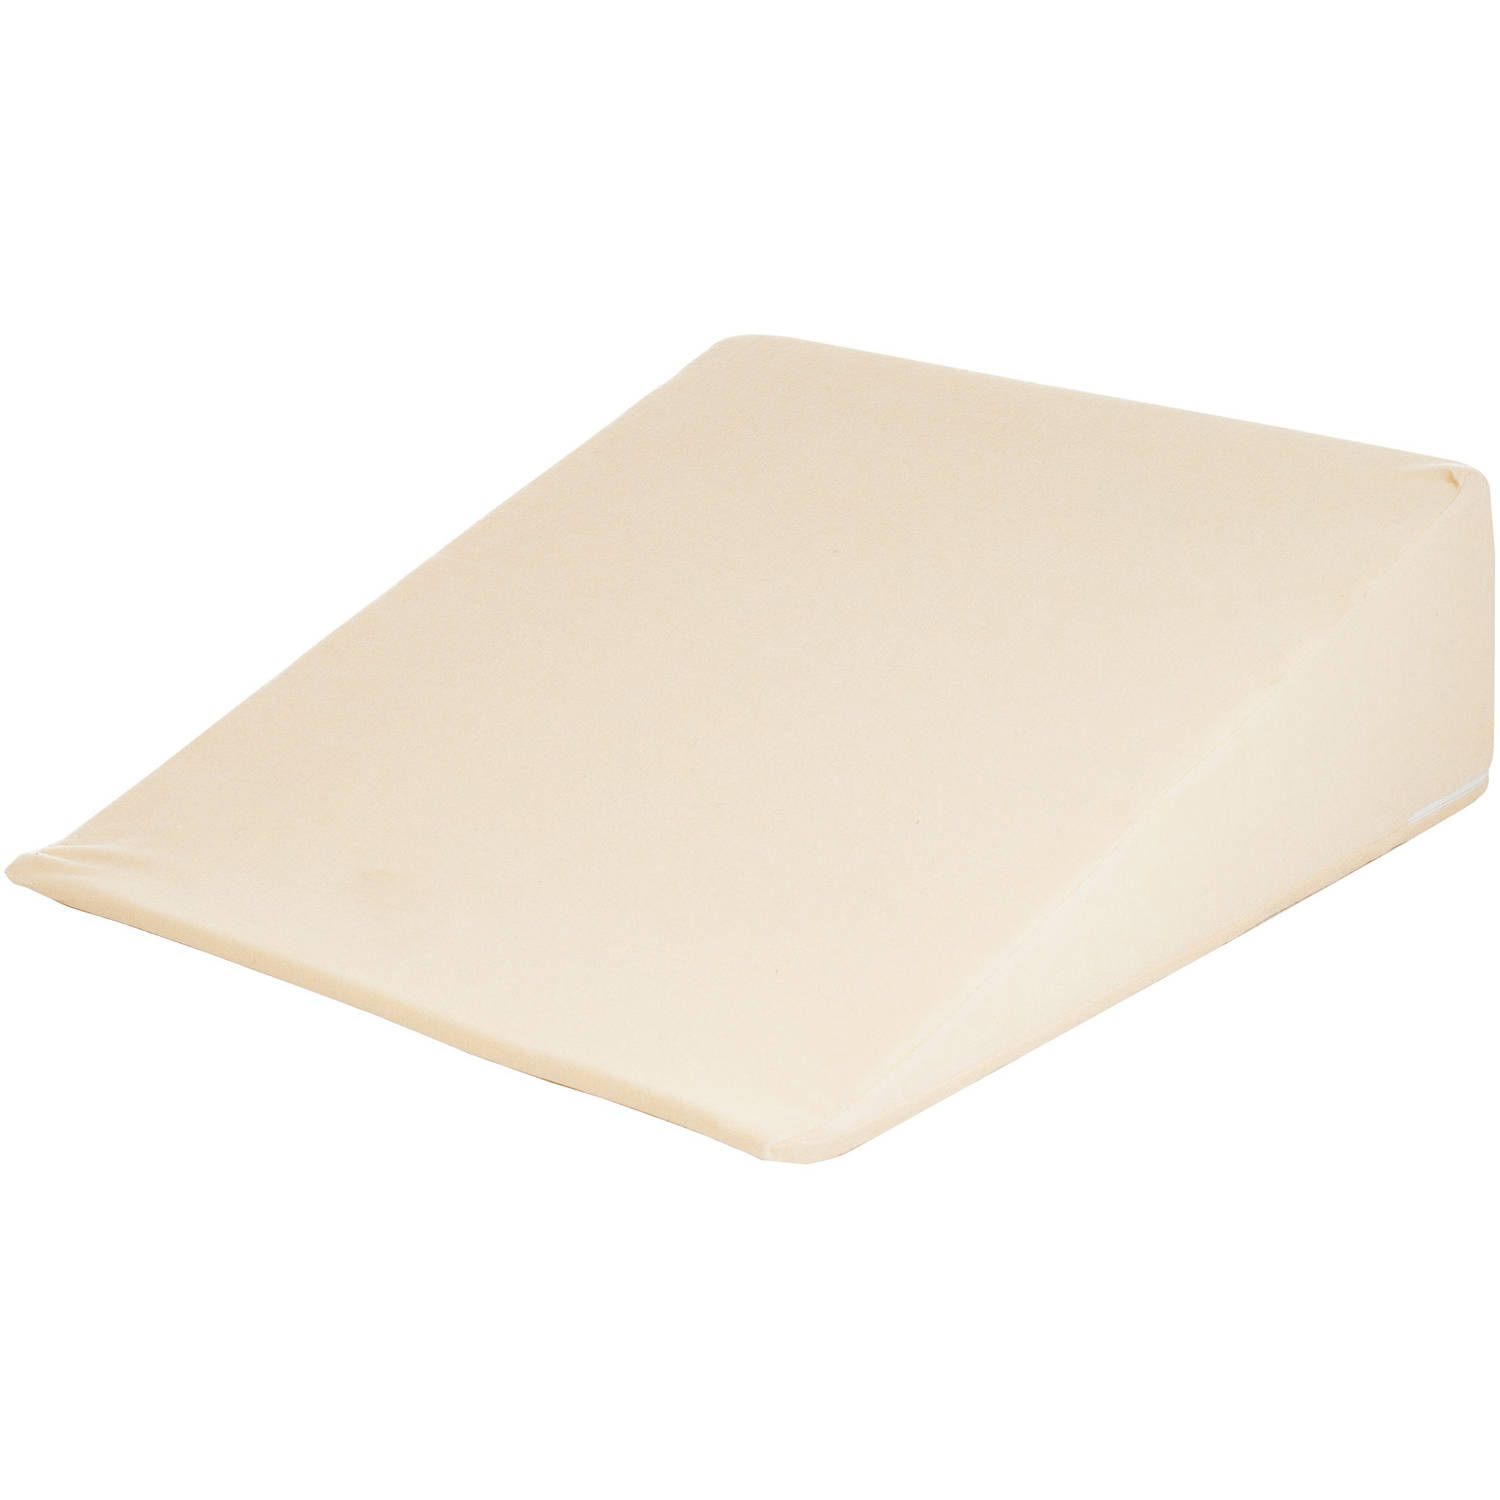 Remedy Natural Pedic Memory Foam Wedge Pillow with Cover